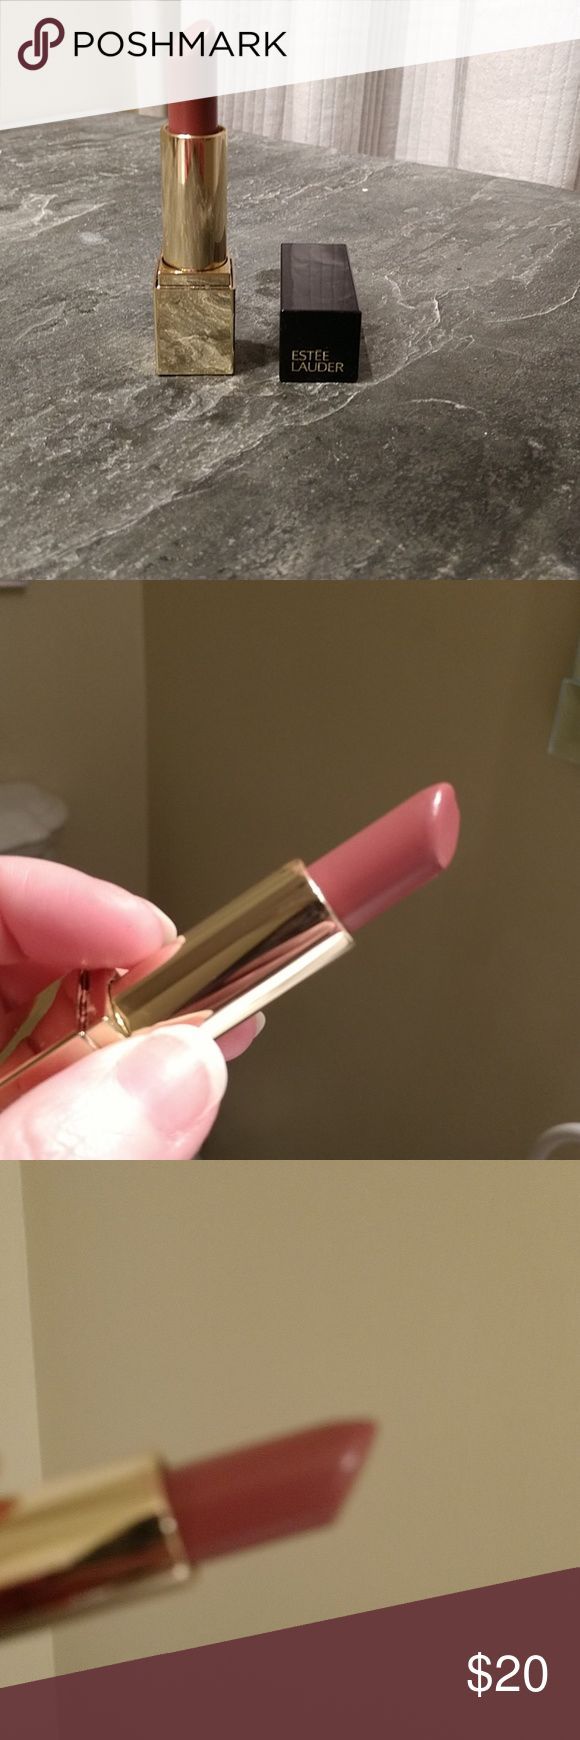 Estee Lauder Pure Color Envy Sculpting lipstick in NWT; only used to swatch. Pure Color Envy in Envious. I took pics in different lighting. High-intensity color. Super creamy, sensually soft and smooth, luxuriously comfortable. Has great reviews. Reasonable offers will be seriously thought about. We can find amount that works for both parties.  BENEFITS   Great ratings Estee Lauder Makeup Lipstick